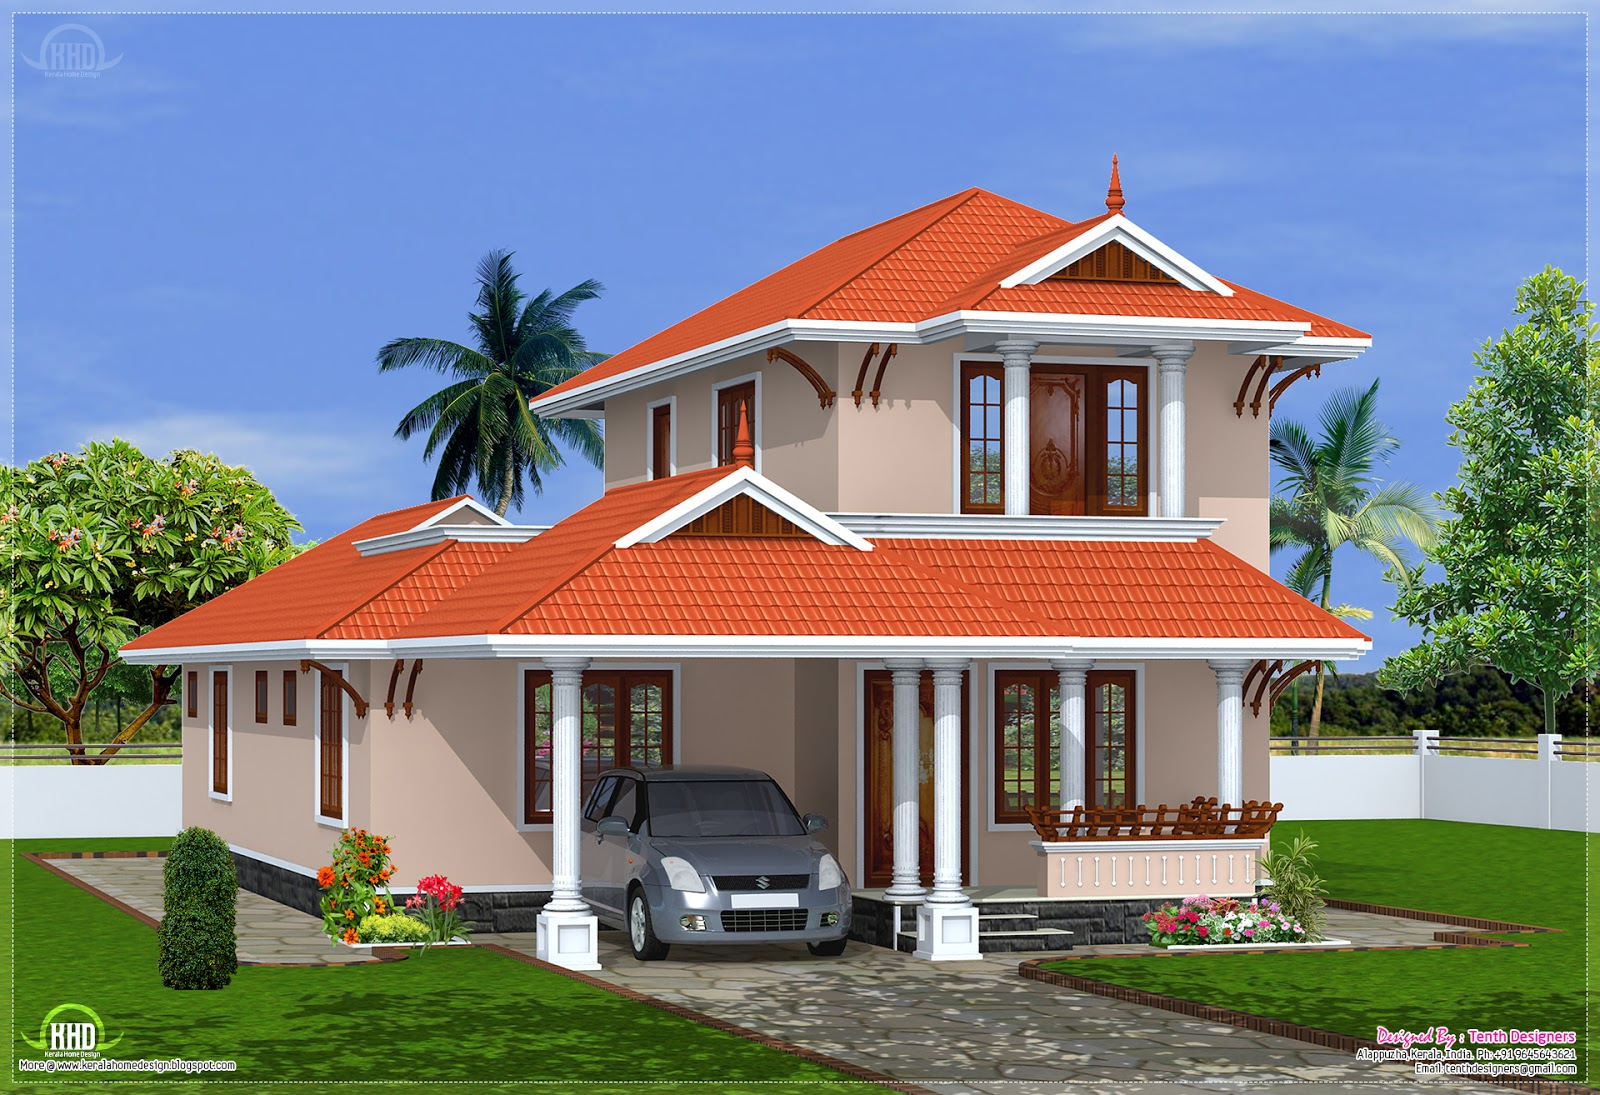 Eco Friendly Houses 2000 Sq Feet Kerala Model Villa Design